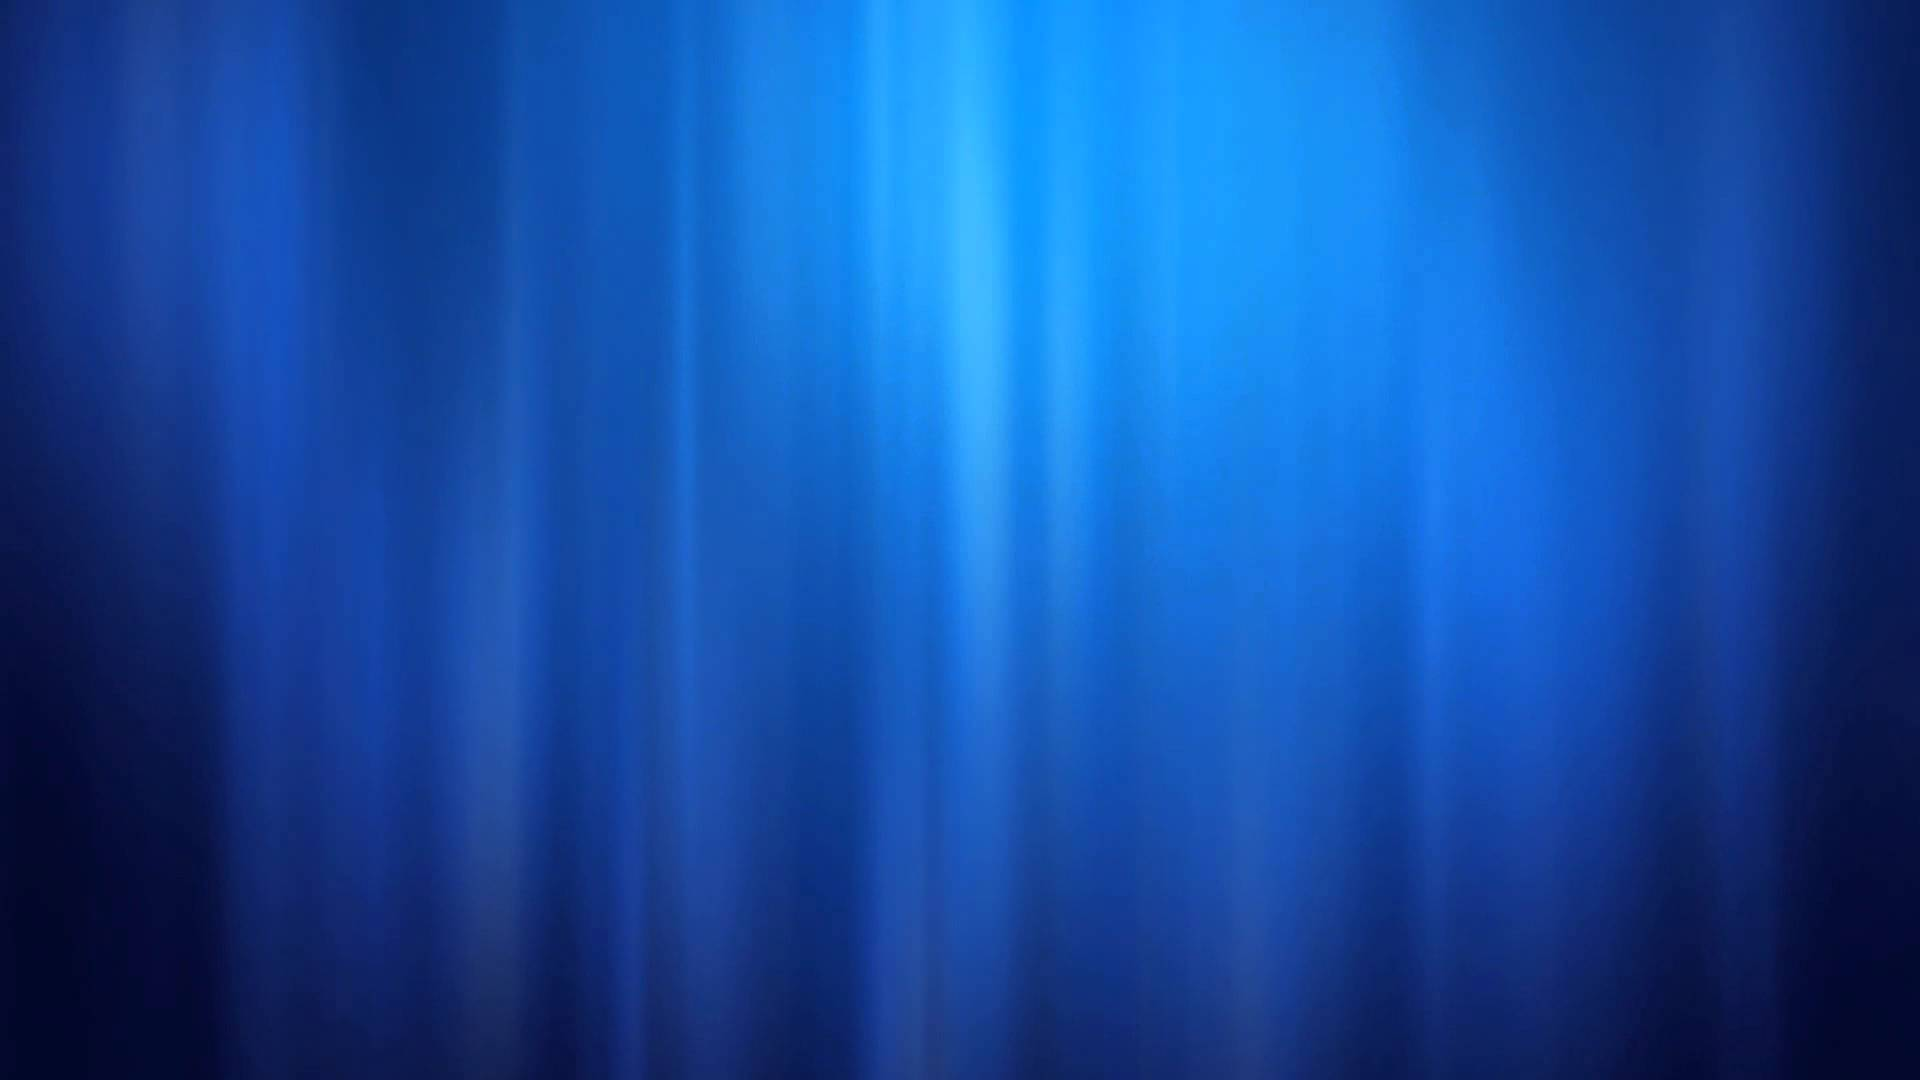 Blue Backgrounds Hd Wallpaper Cave